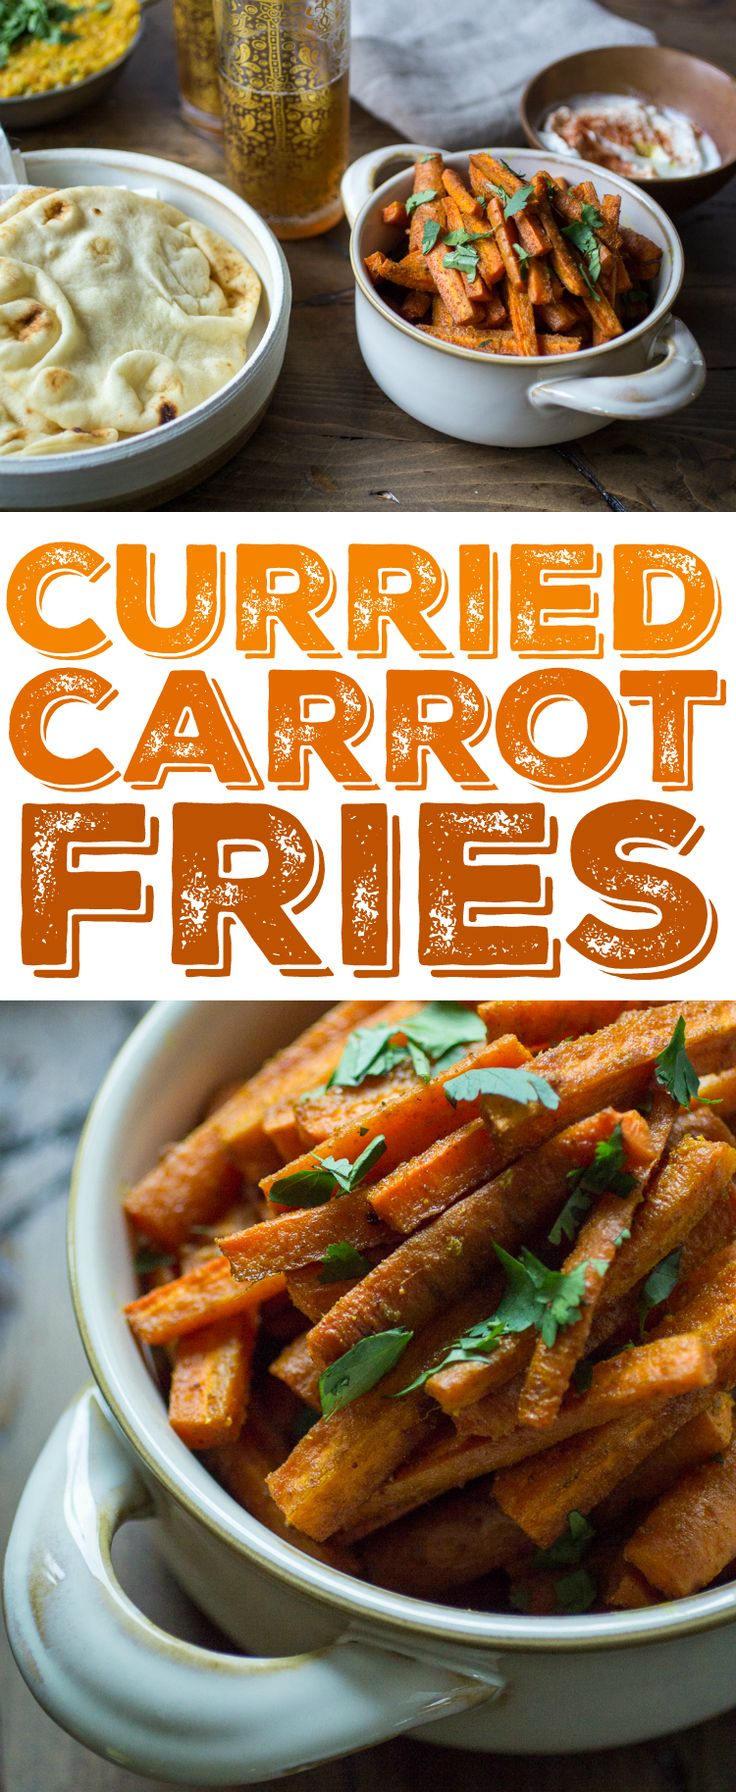 Four ingredients and thirty minutes are all you need to whip up a batch of these tasty Curried Carrot Fries!